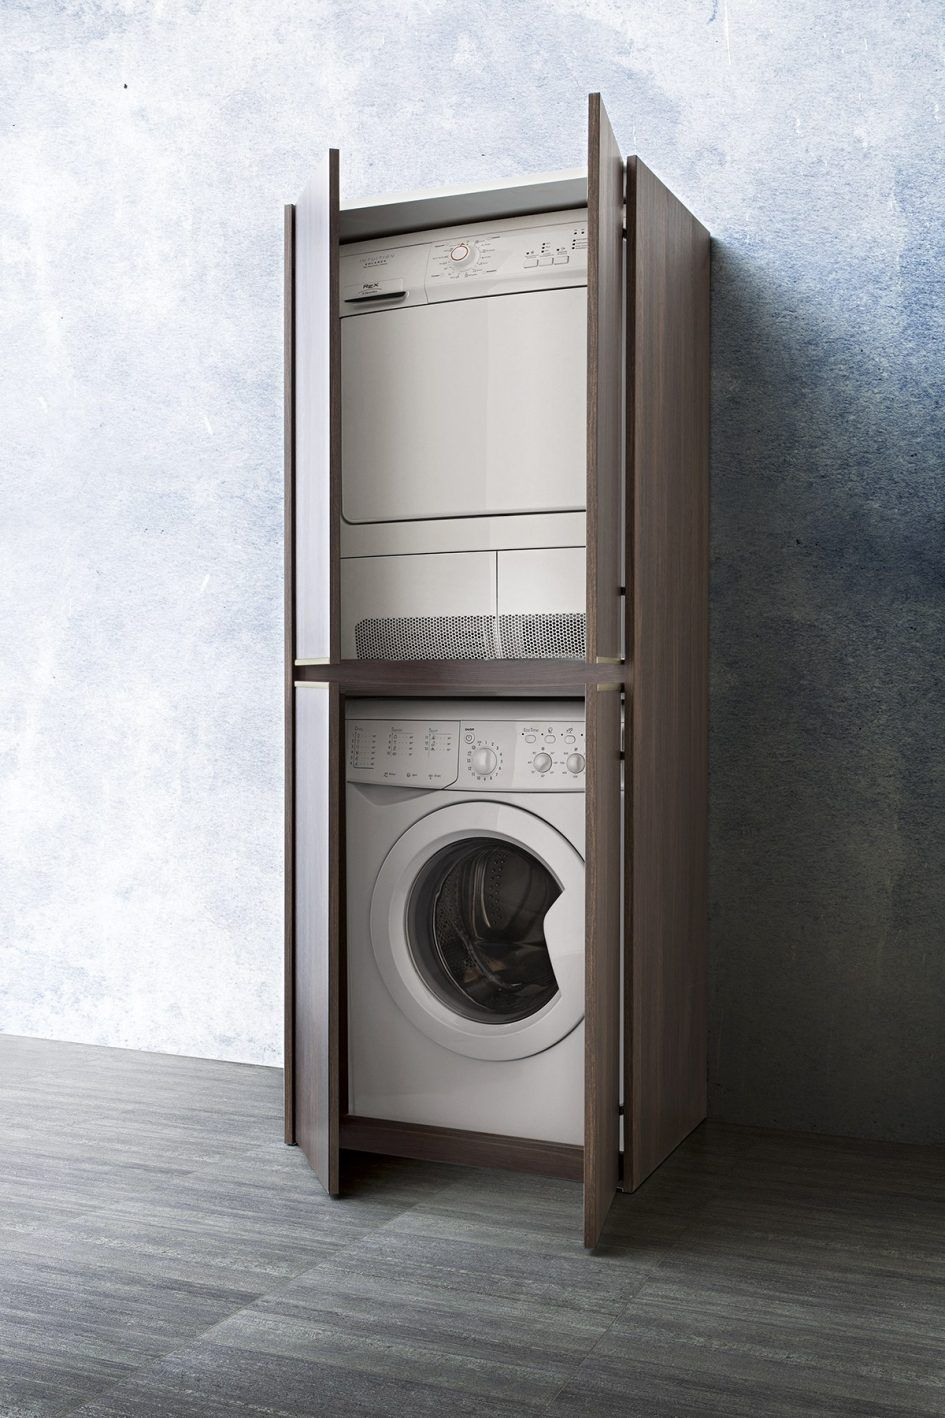 Impressionnant Meuble Lave Vaisselle Encastrable Ikea Et Good Lave Linge Encastrable Ikea Collection Photo Armoire A Linge Machine A Laver Lave Linge